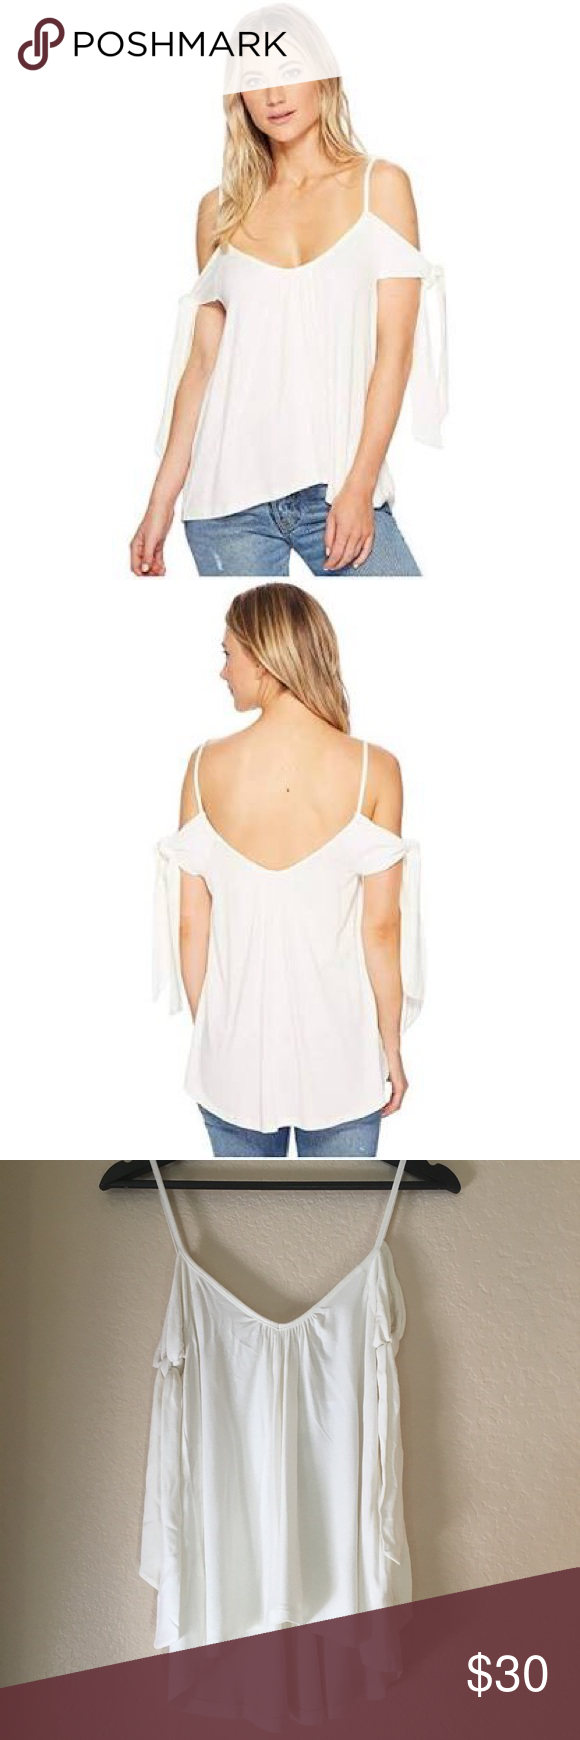 ea916058a50d2a Free People Believe Me Cold Shoulder Top Size XS NWT Free People White Top  with tie